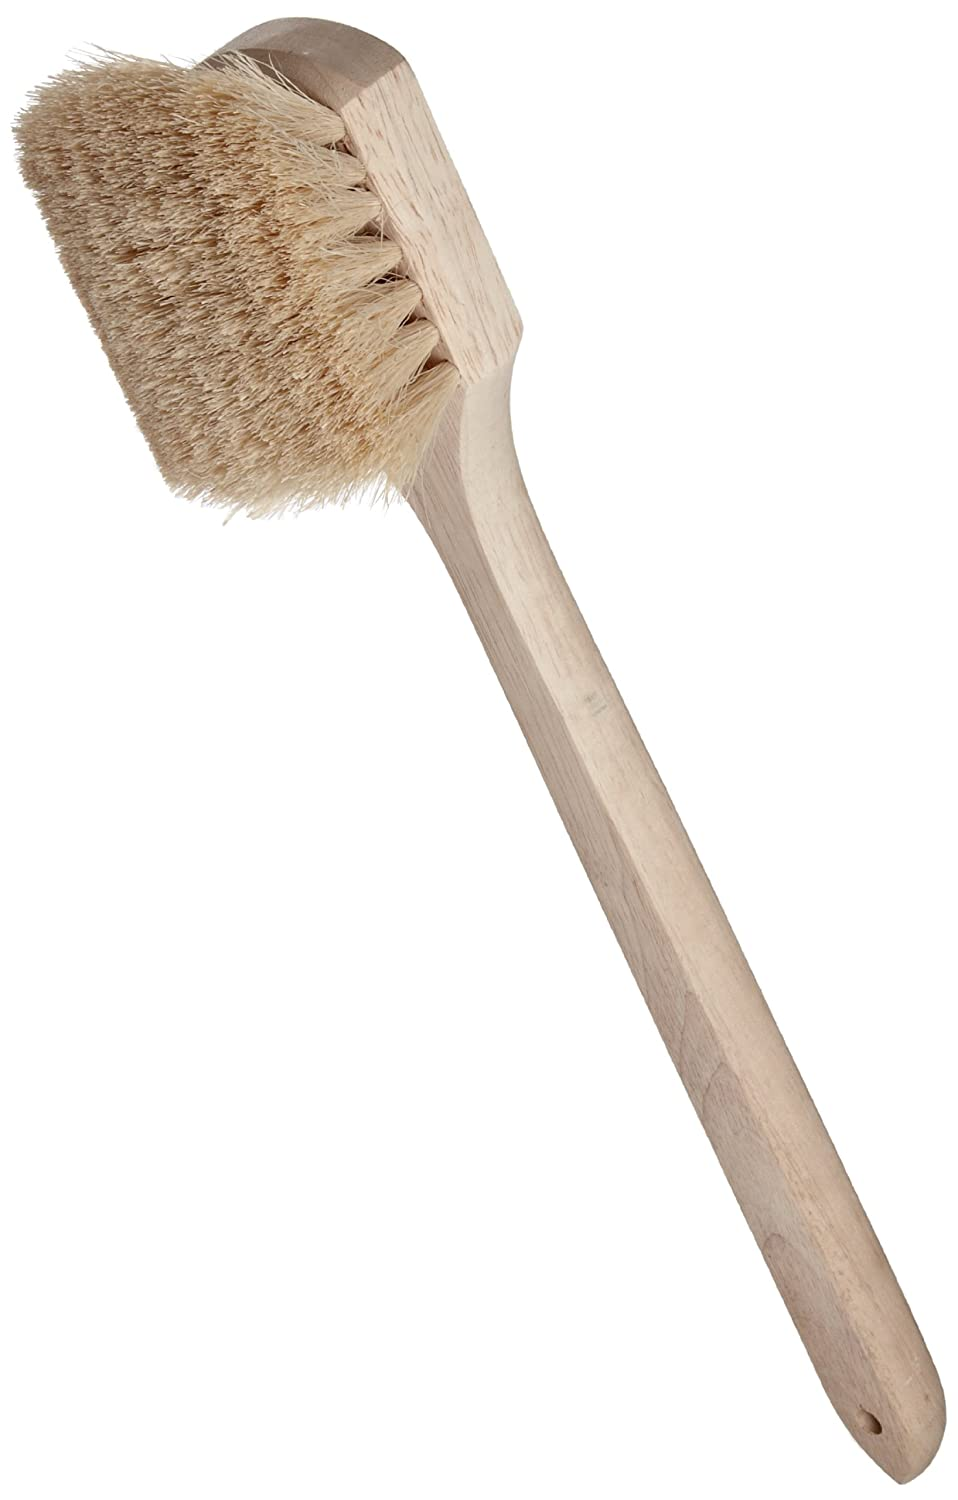 """Weiler 44017 Tampico Fiber Utility Scrub Brush with Long Wood Handle, 2-1/2"""" Head Width, 20"""" Overall Length"""